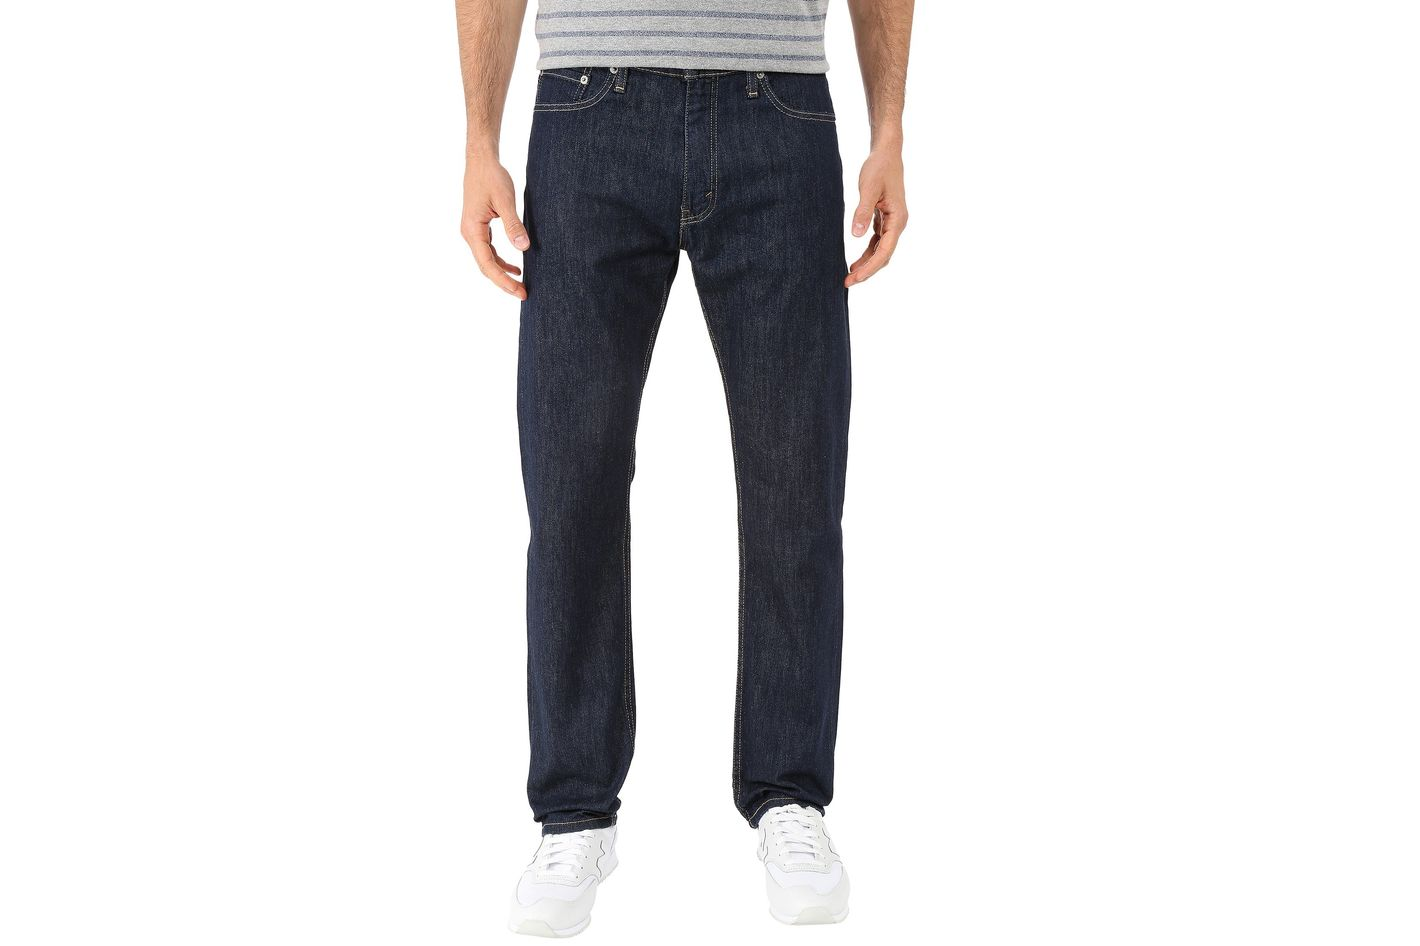 Levi's 513 Straight-Fit Jeans